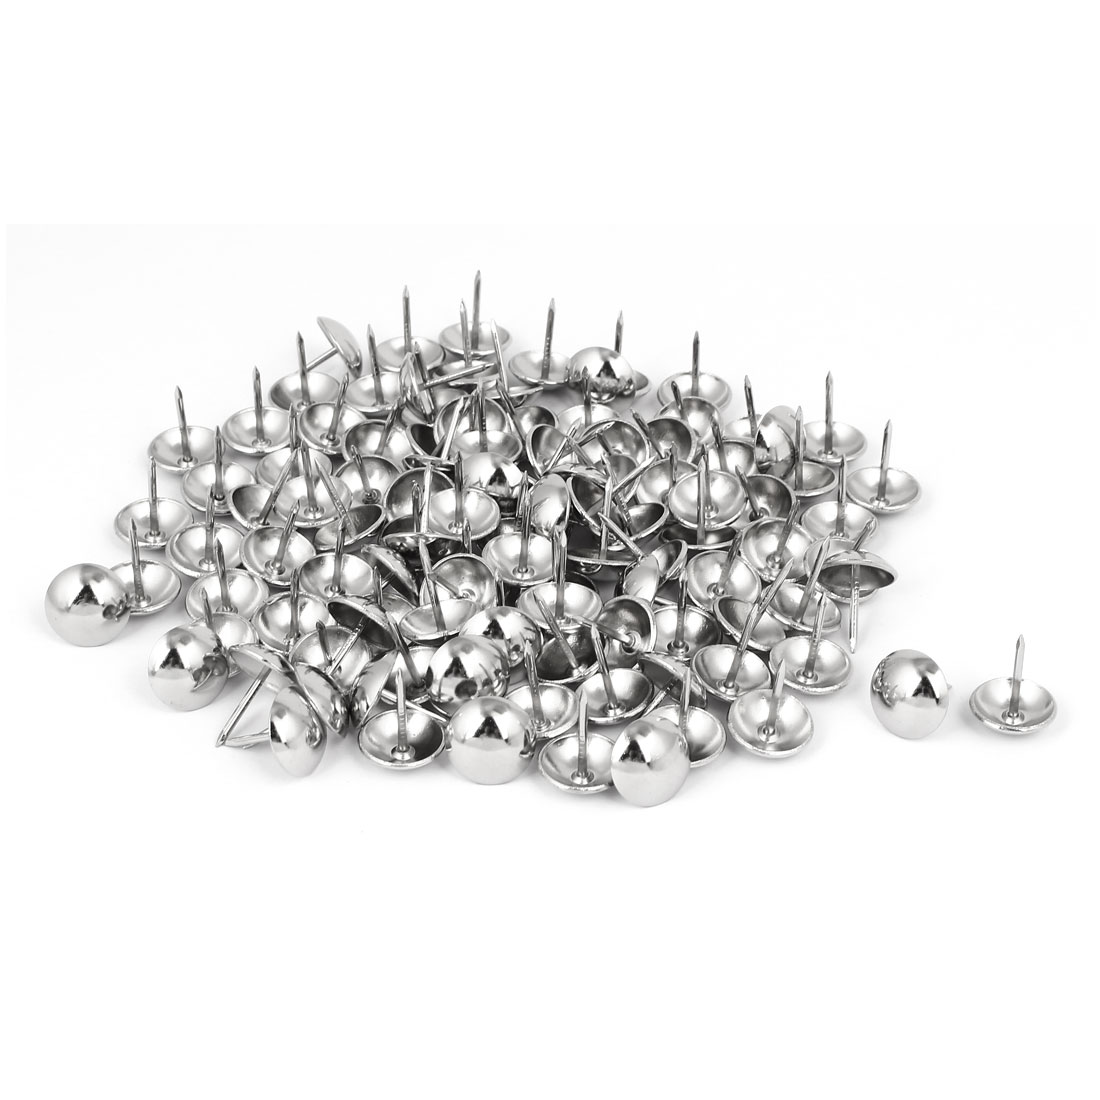 Home Metal Round Domed Head Upholstery Tack Nail Silver Tone 16mm Dia 120pcs